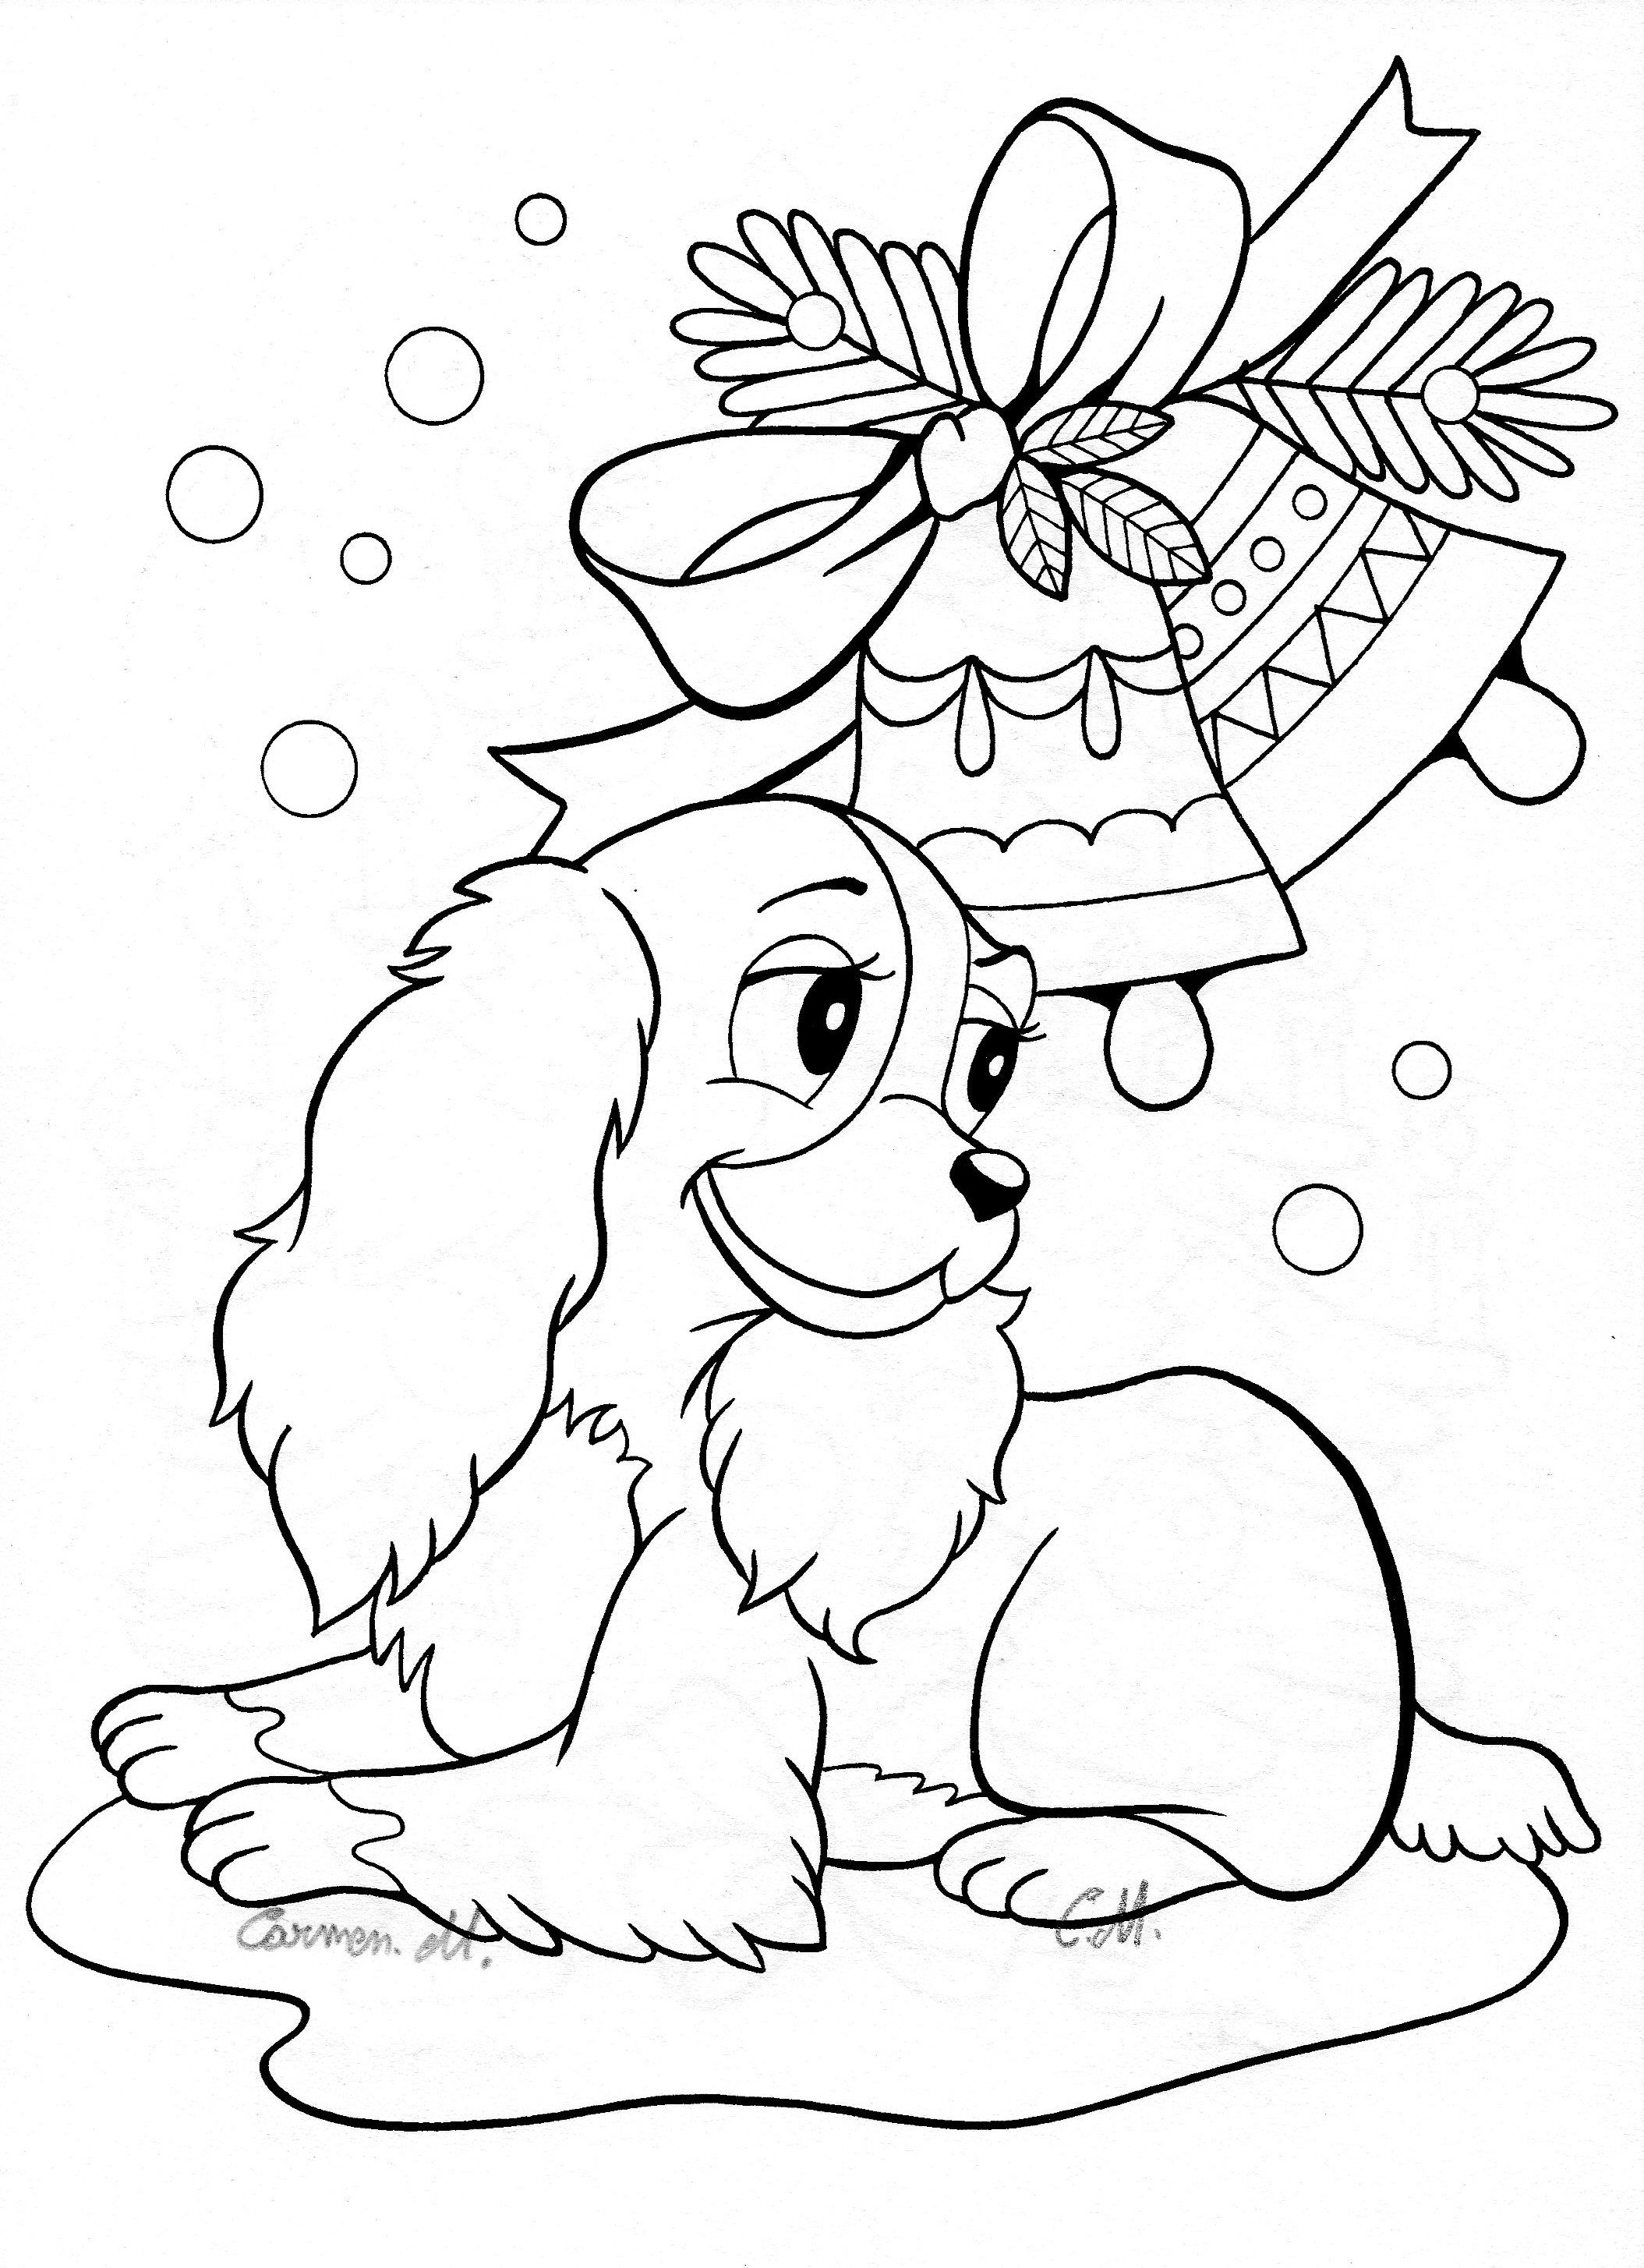 Pin by Olga Kudriavtseva on Disegni Natale | Printable christmas coloring  pages, Disney coloring pages, Dog coloring page